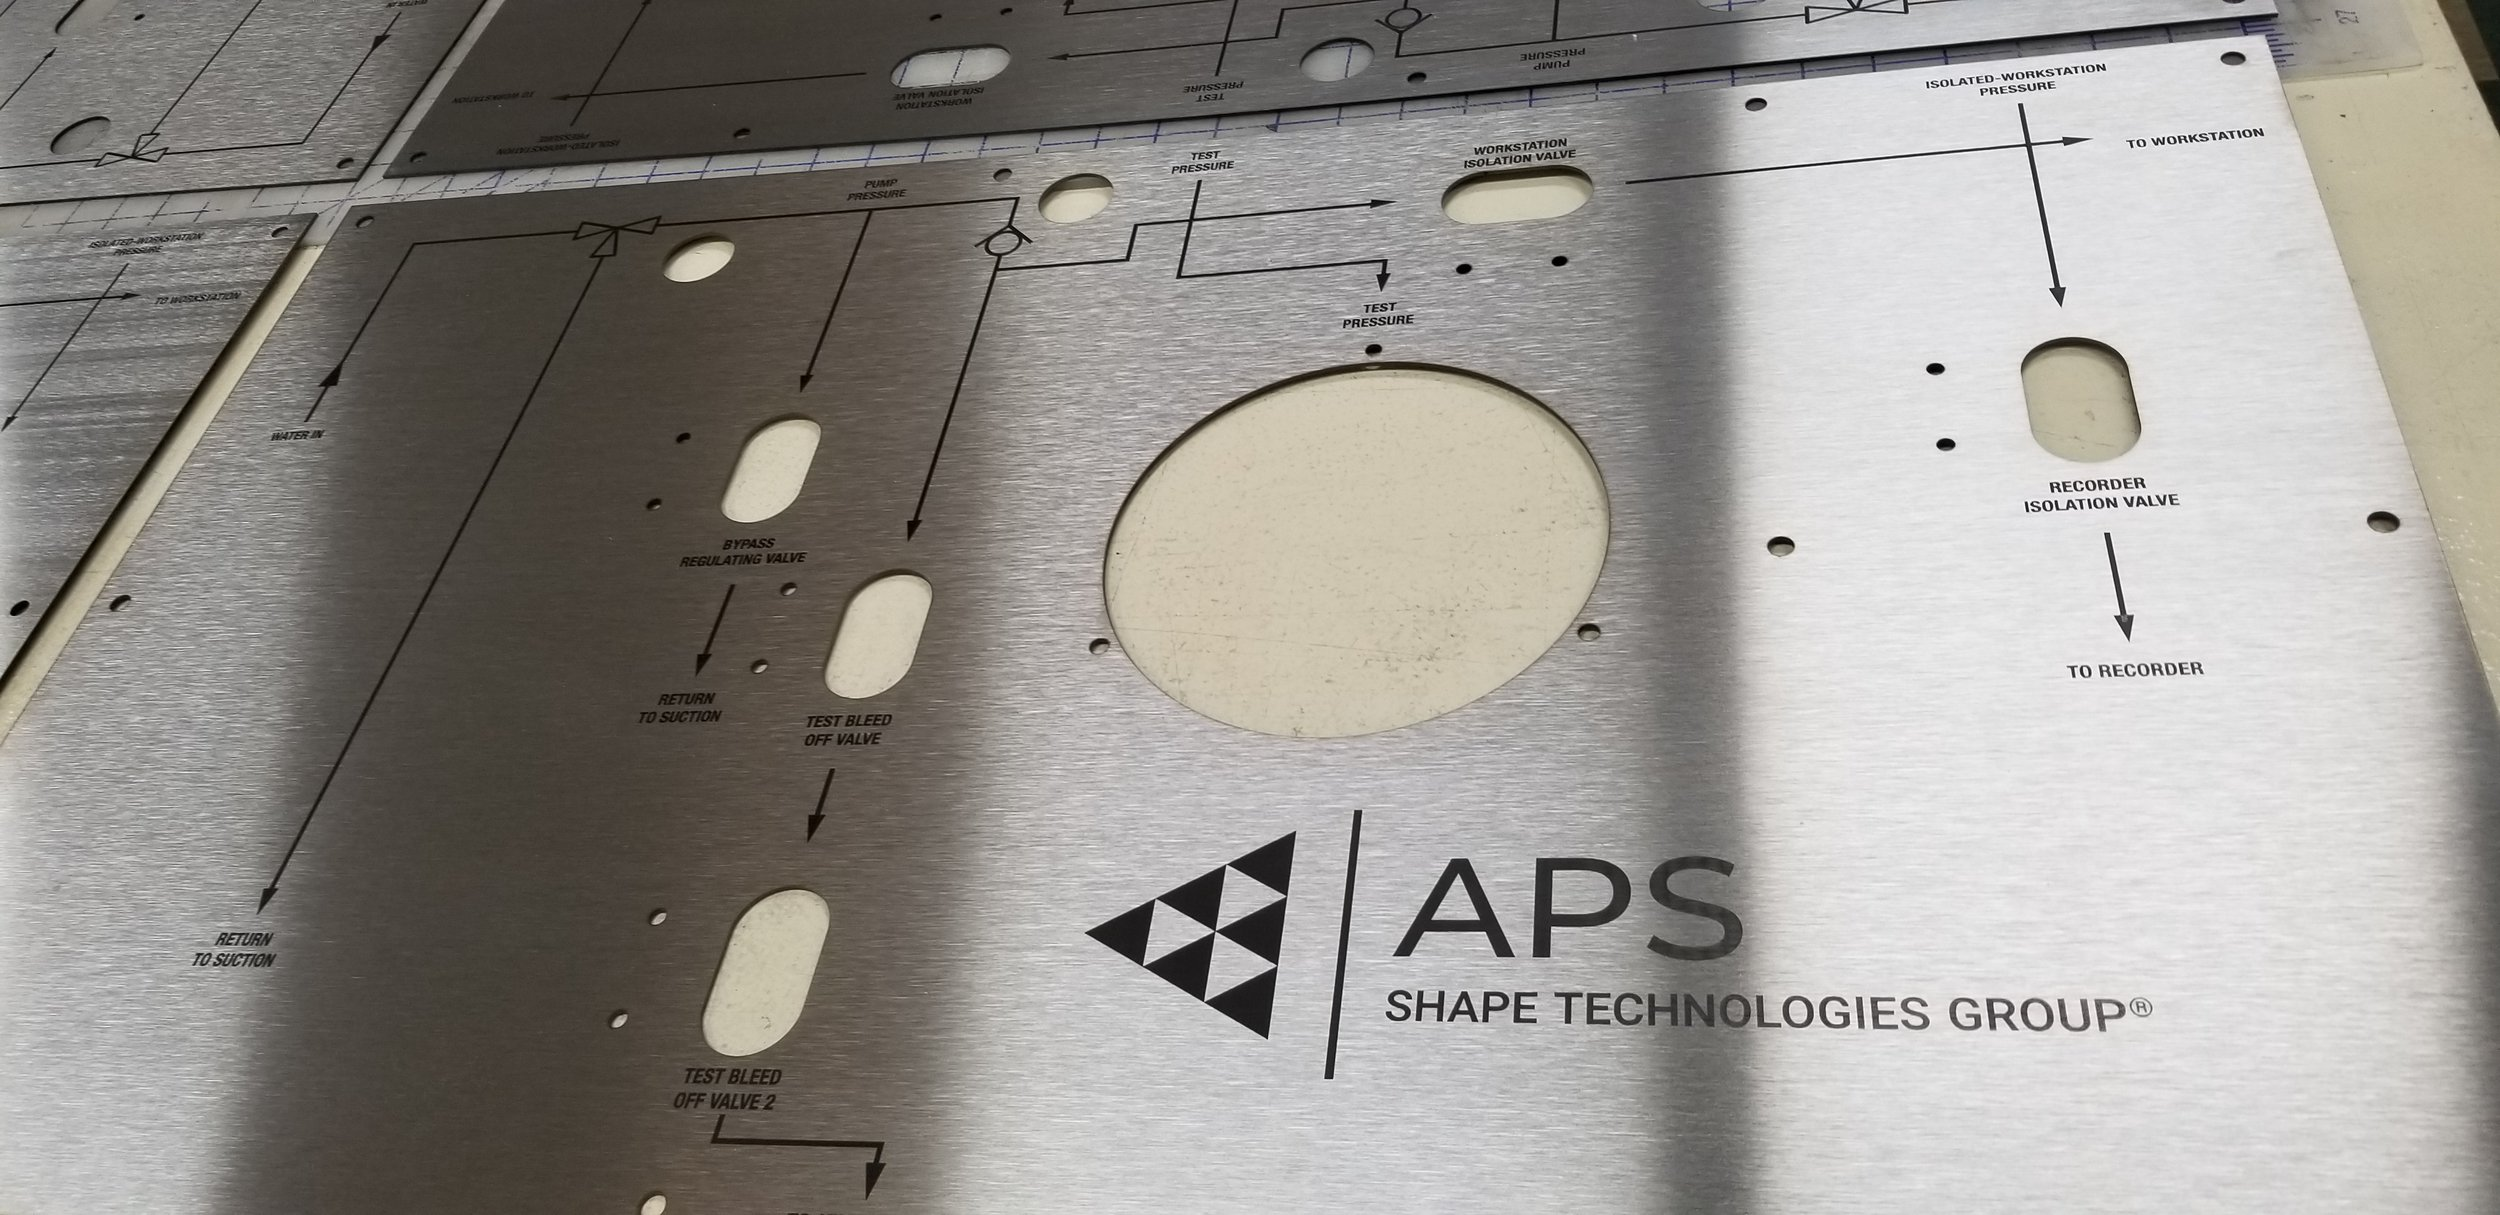 Engraved Metal Plate - Engraved Metal Sign - Engraved Stainless Steel Panel - Engraved Stainless Steel Plate - Engraved Stainless Steel Sign - Industrial Engraving Services - Engrave It Houston